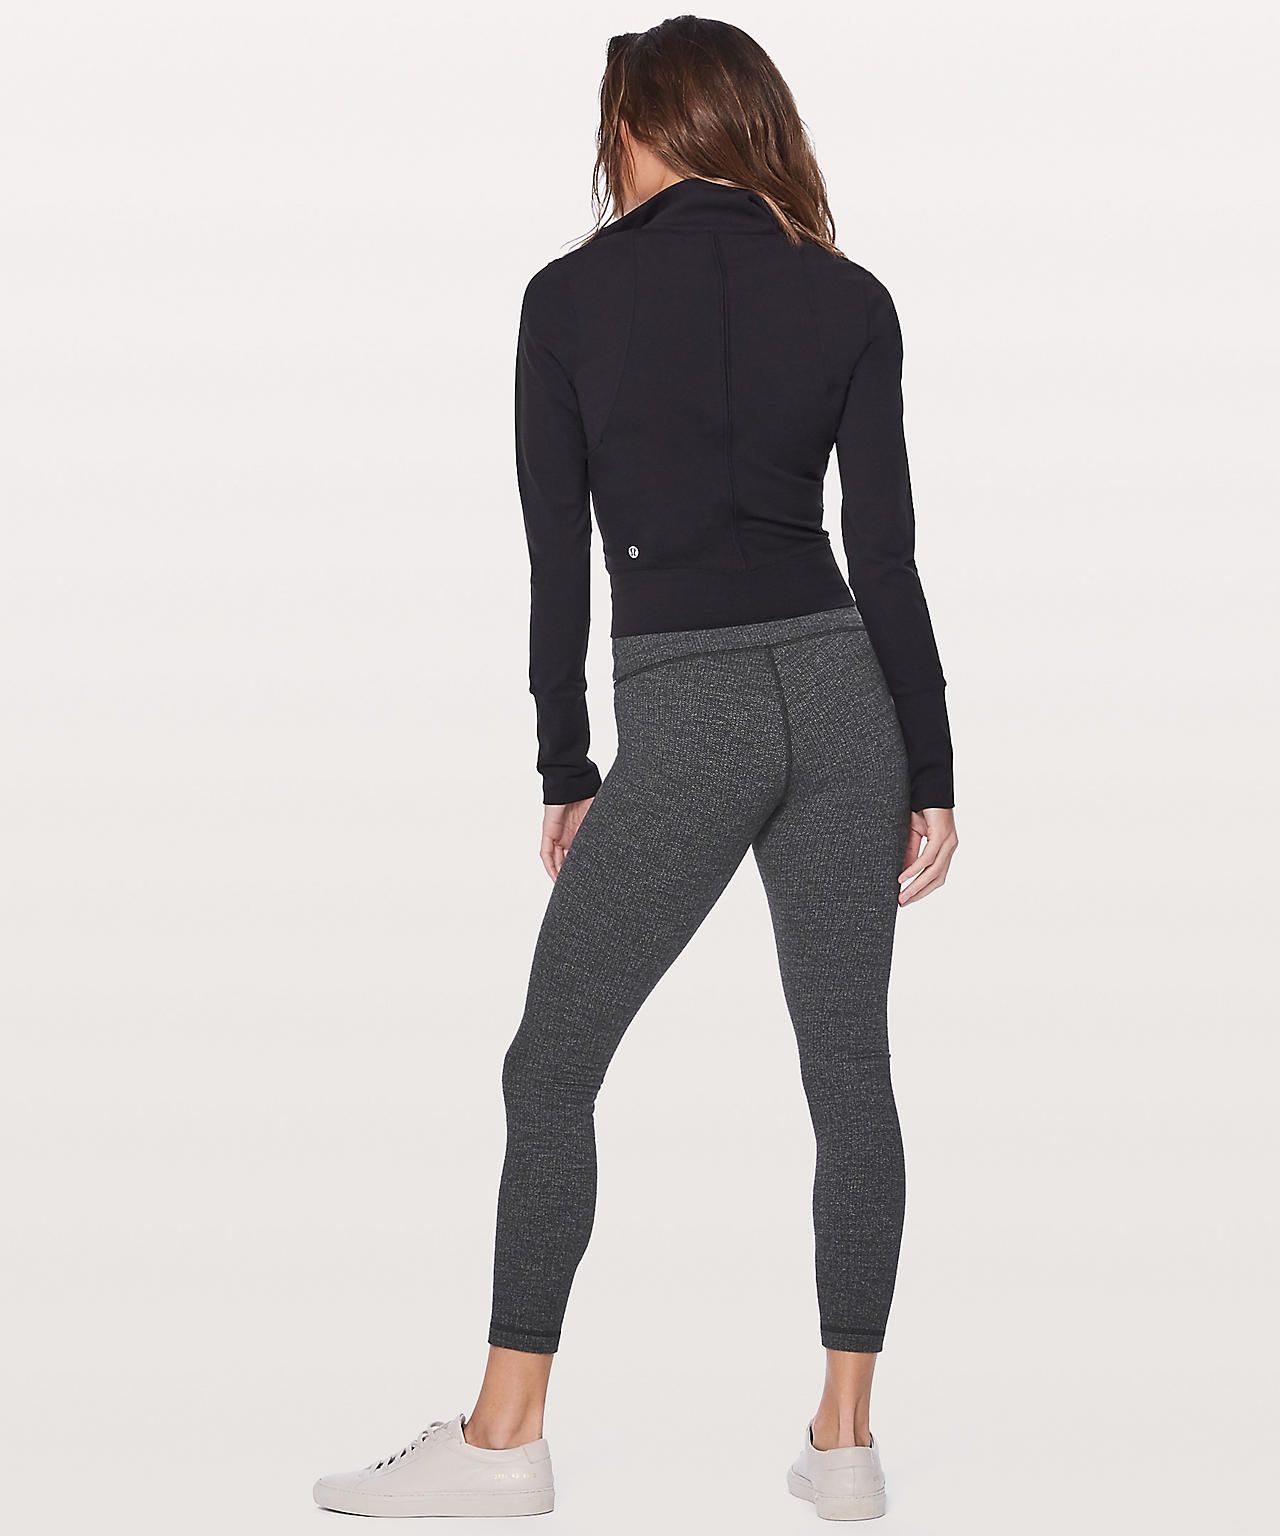 b41867b75c Lululemon Wunder Under High-Rise Tight 25 | Wish list ✨ | Under ...